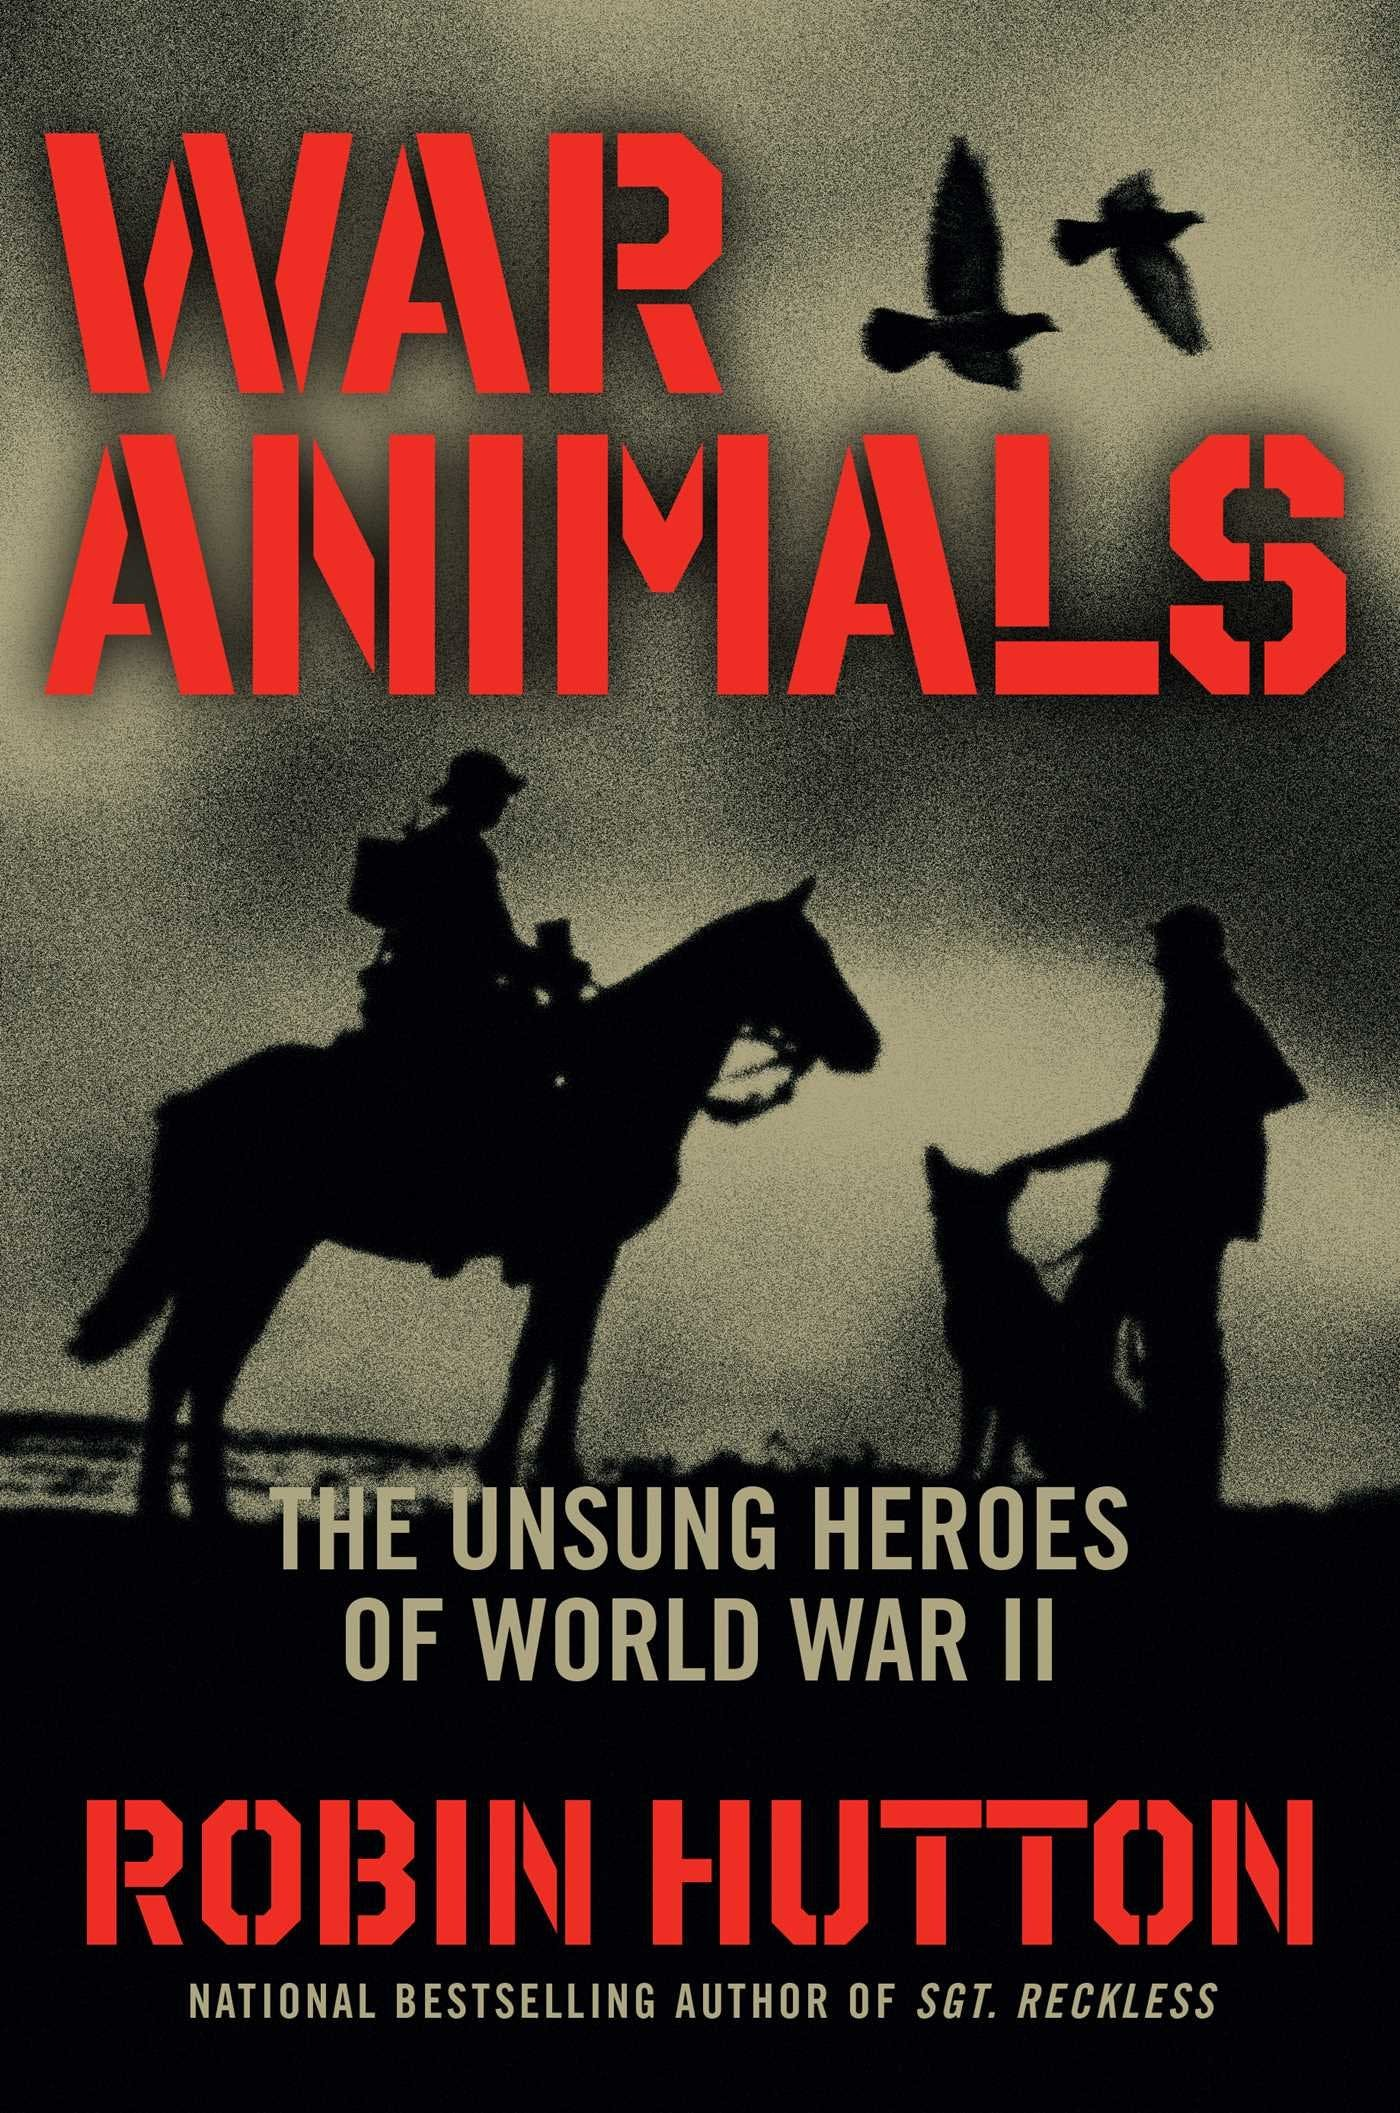 Episode 230-Interview with Robin Hutton-War Animals-The Unsung Heroes of WWII